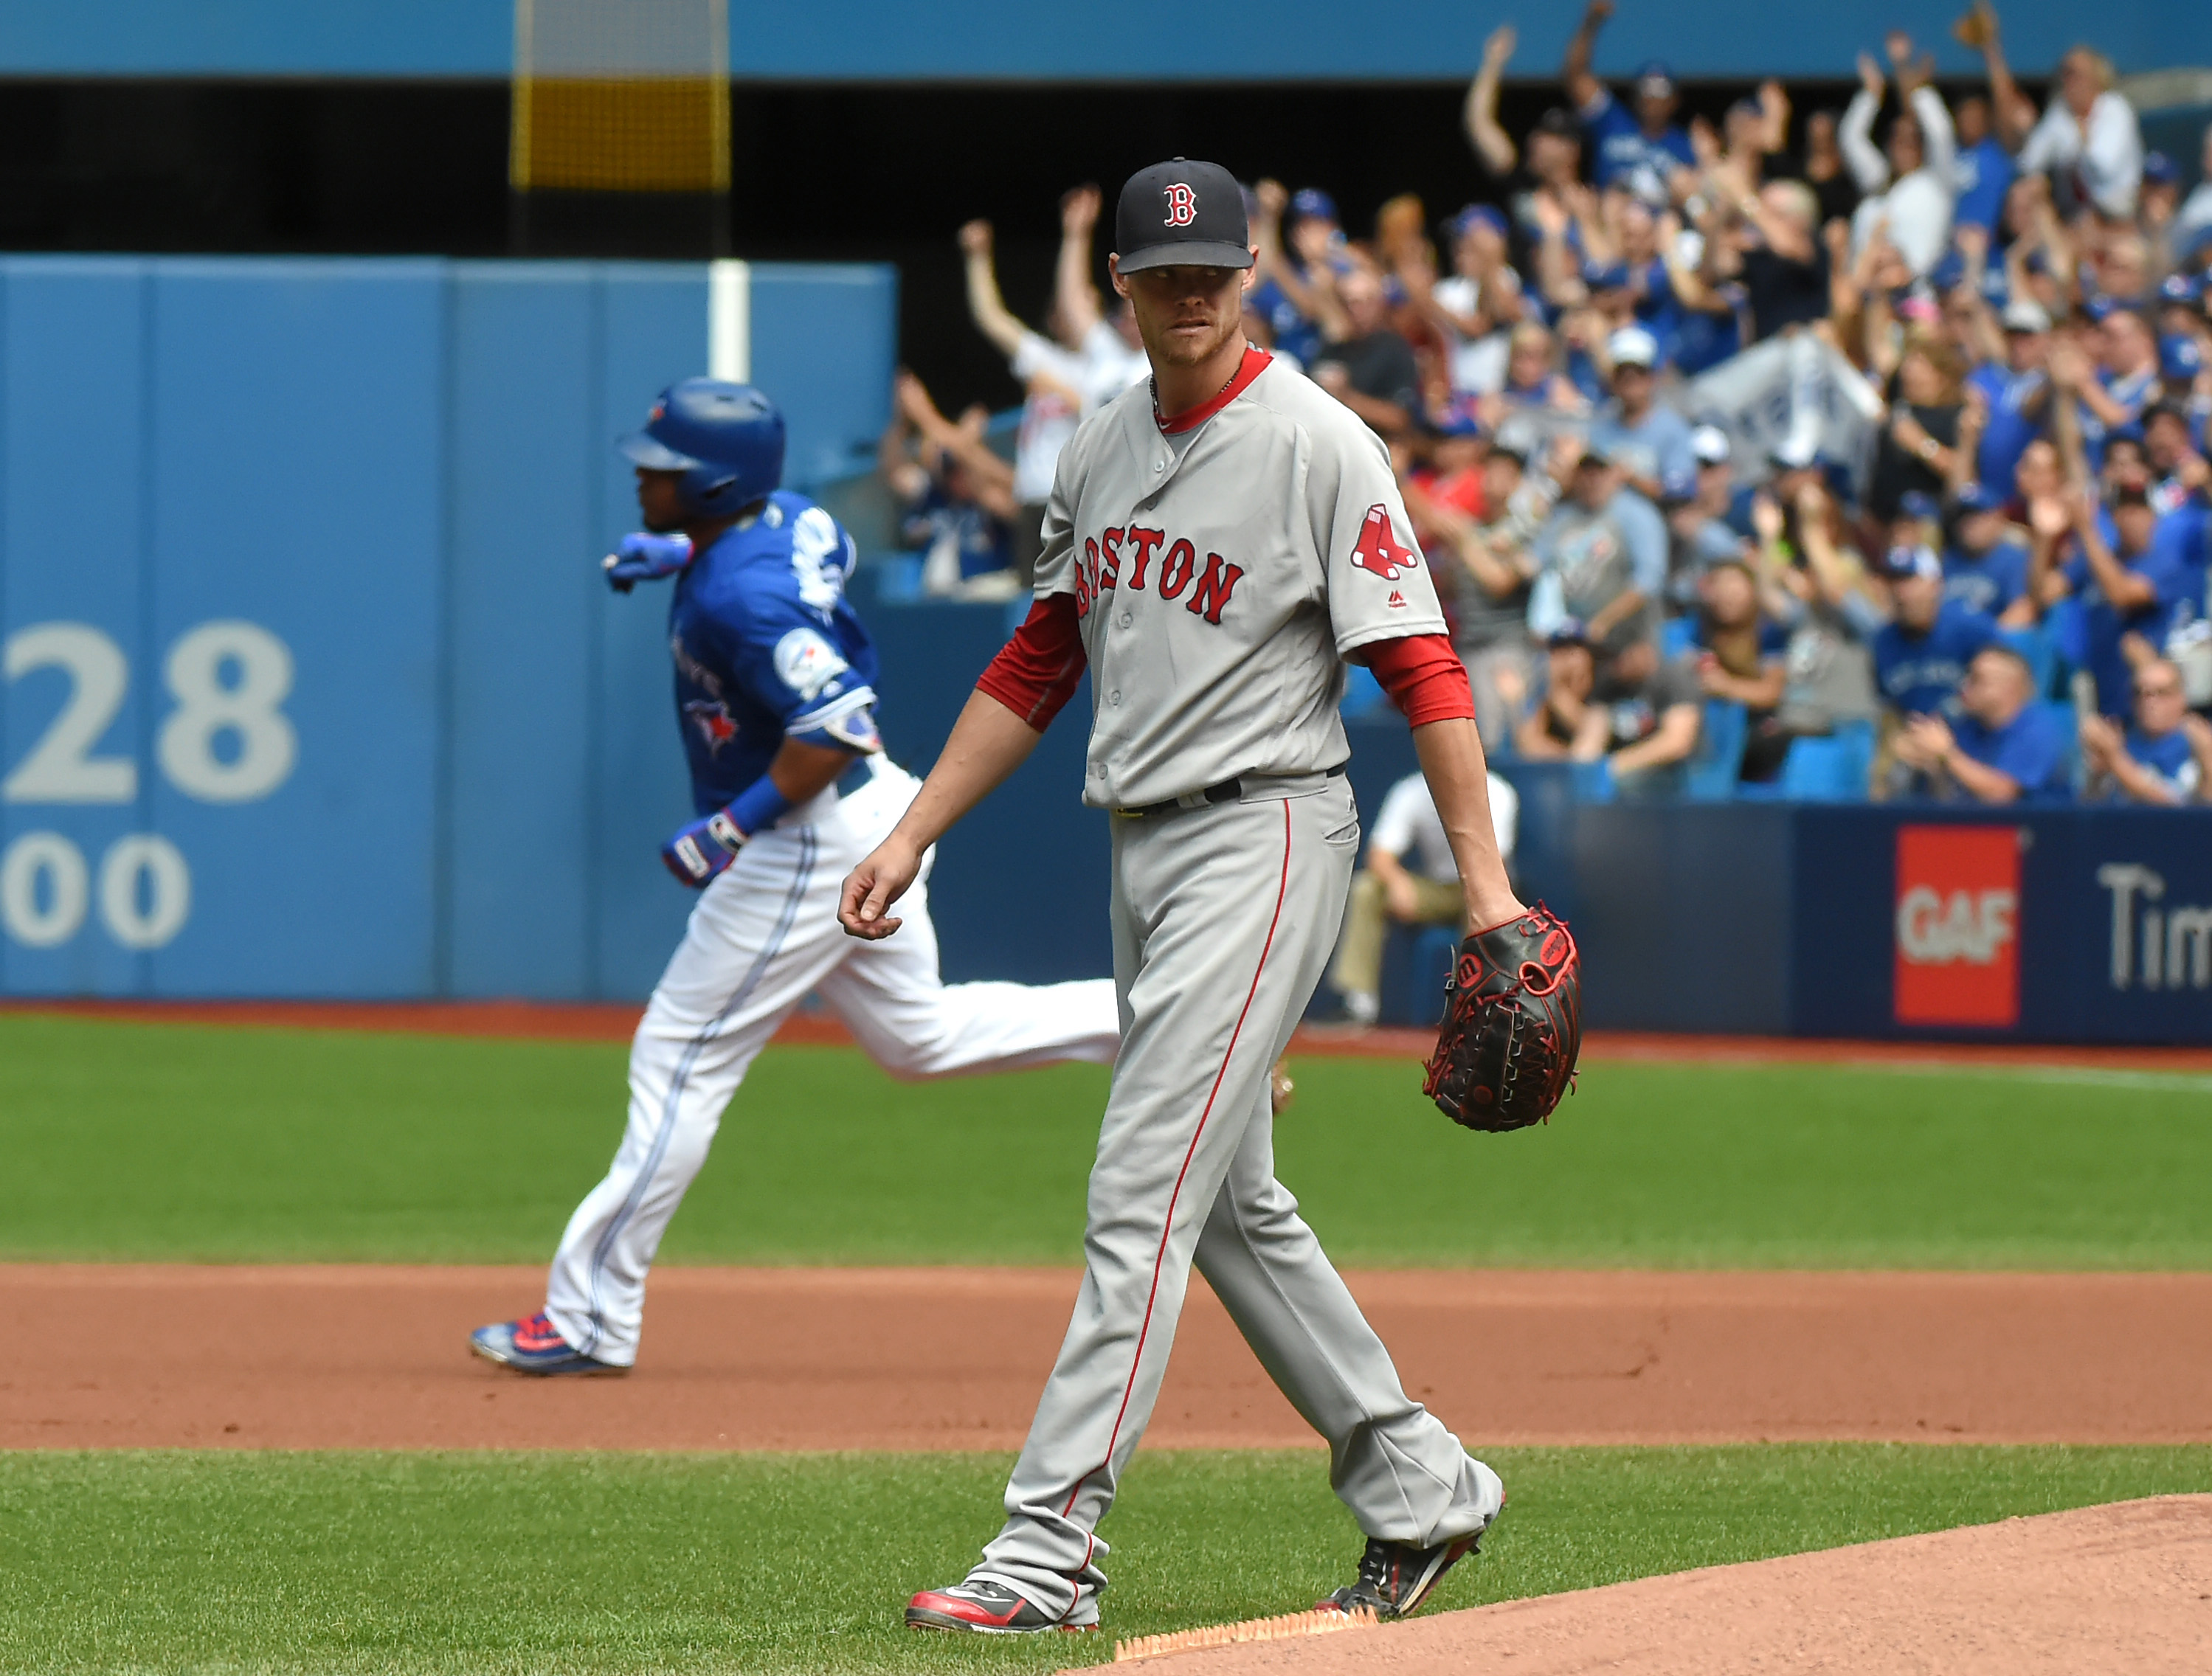 Bogaerts has 3 hits, 3 RBIs as Red Sox beat Rangers 11